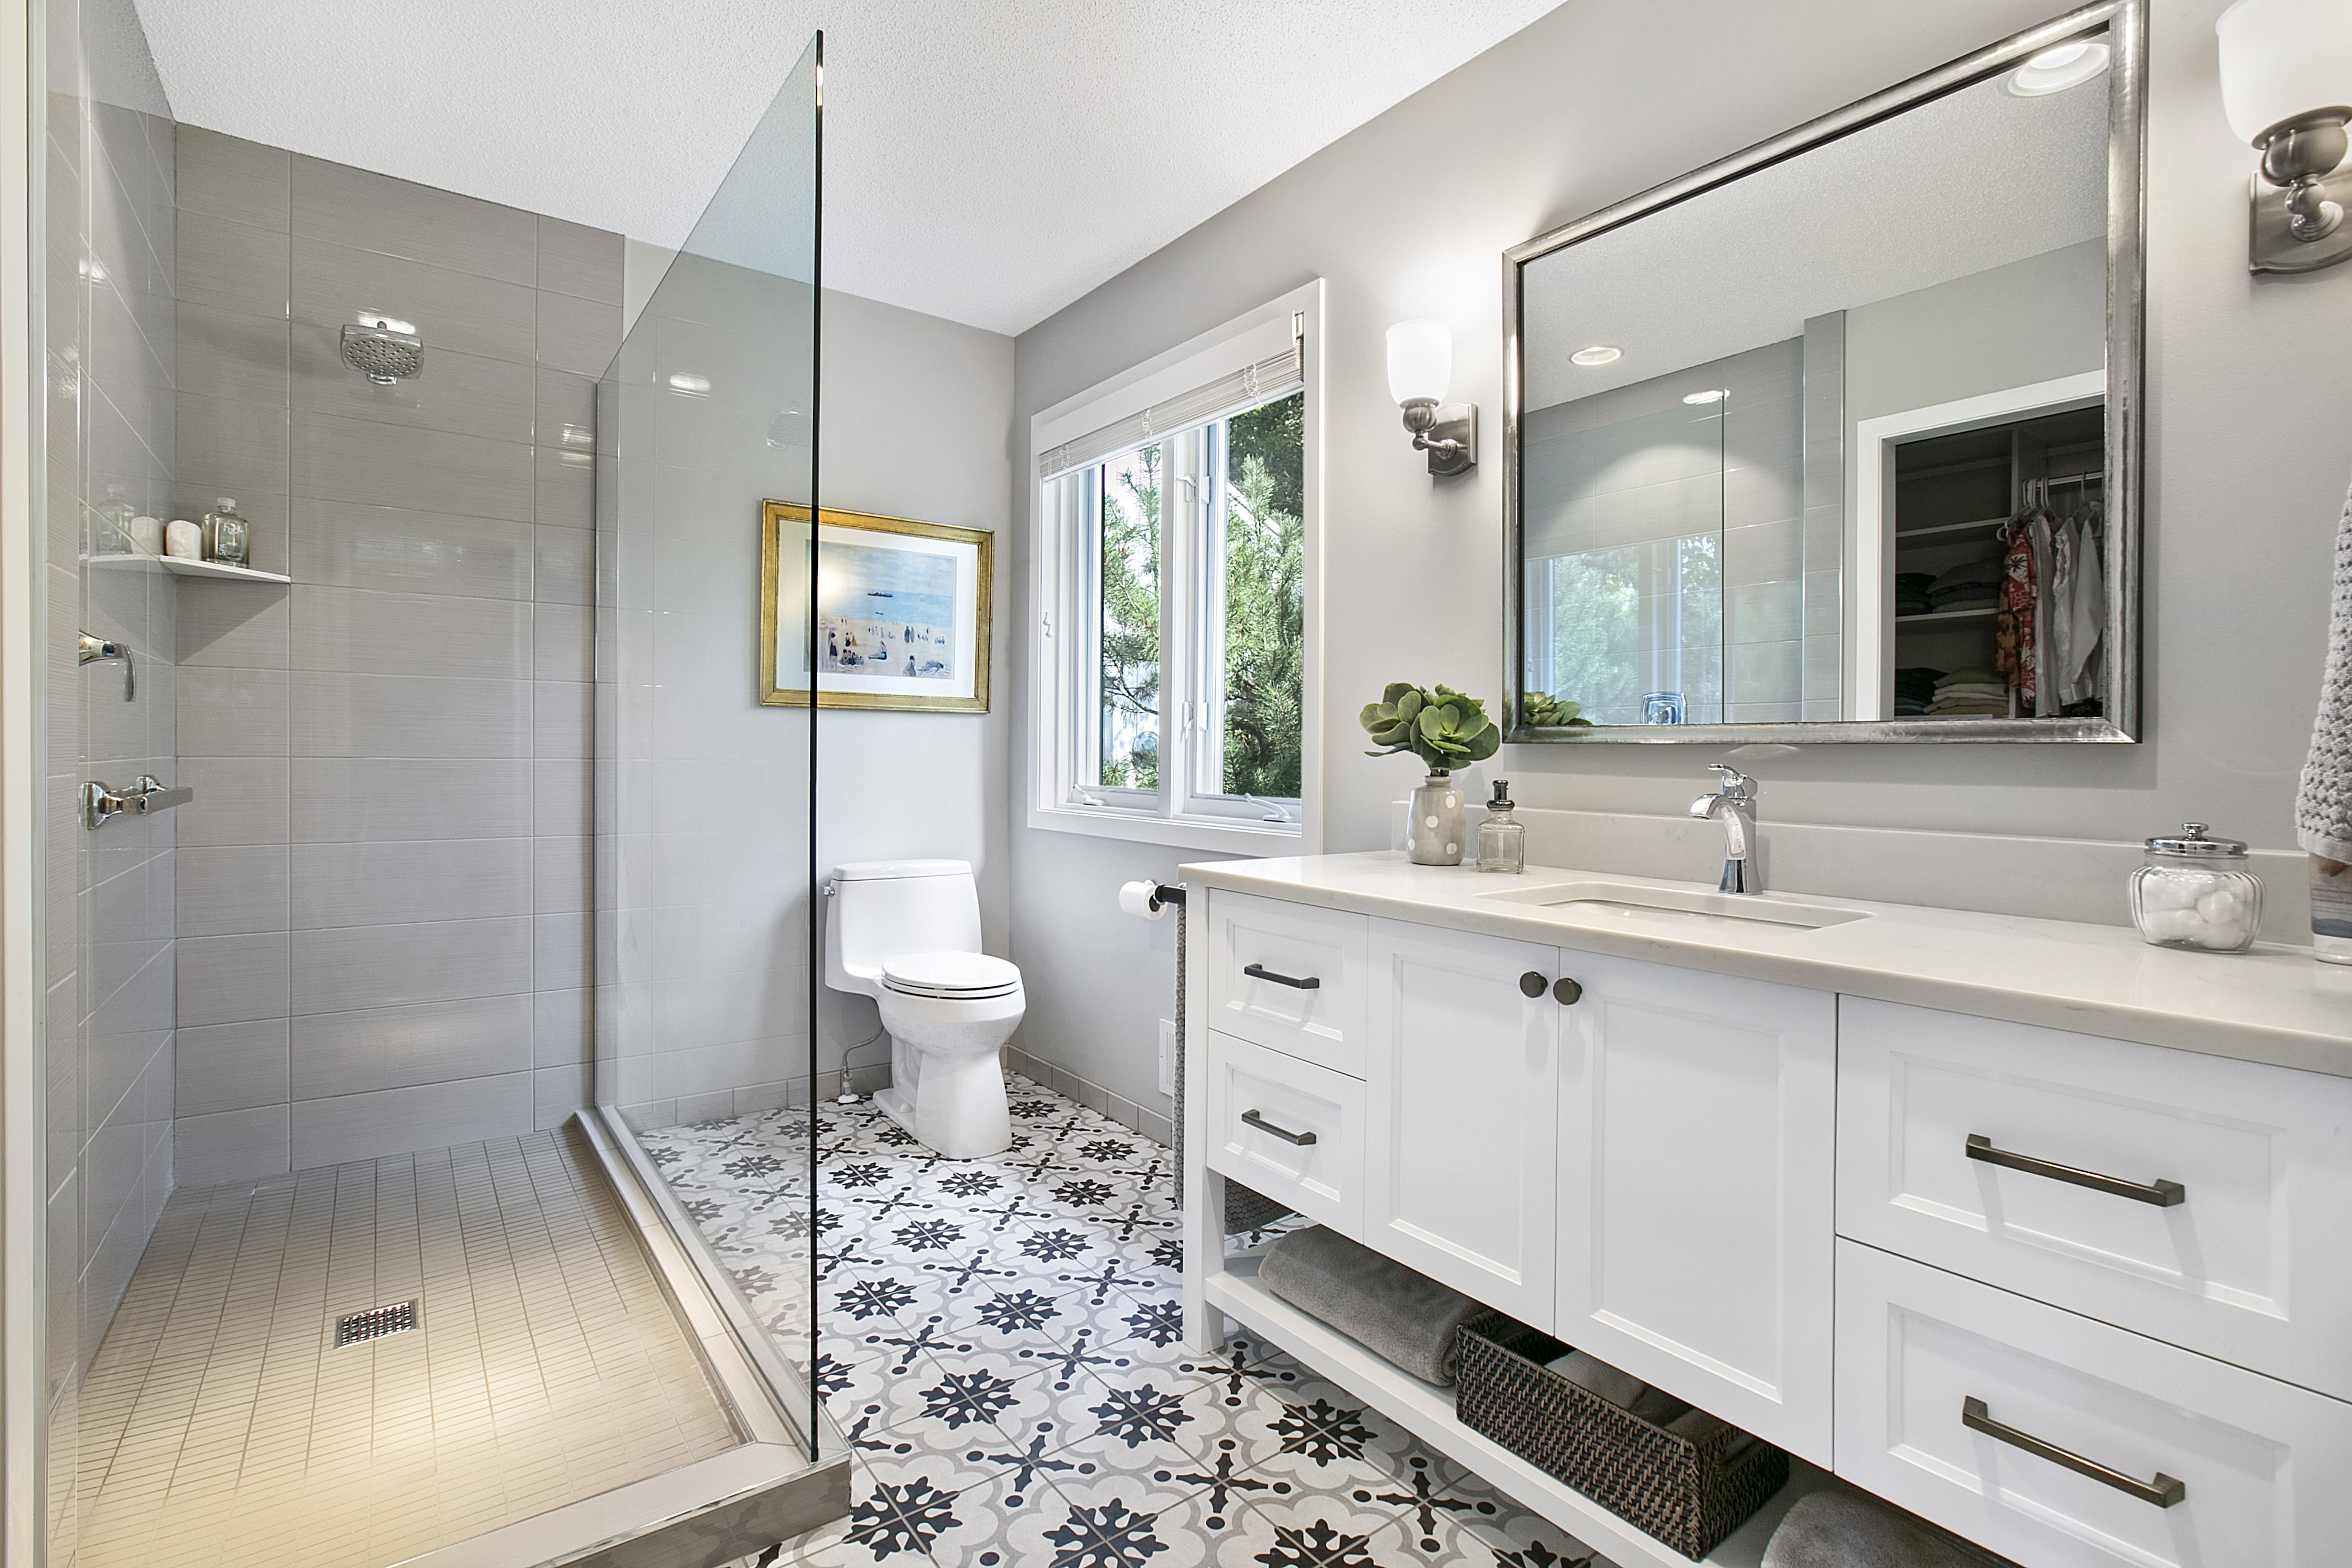 Bathroom Remodeling Portfolio & Gallery | James Barton Design-Build